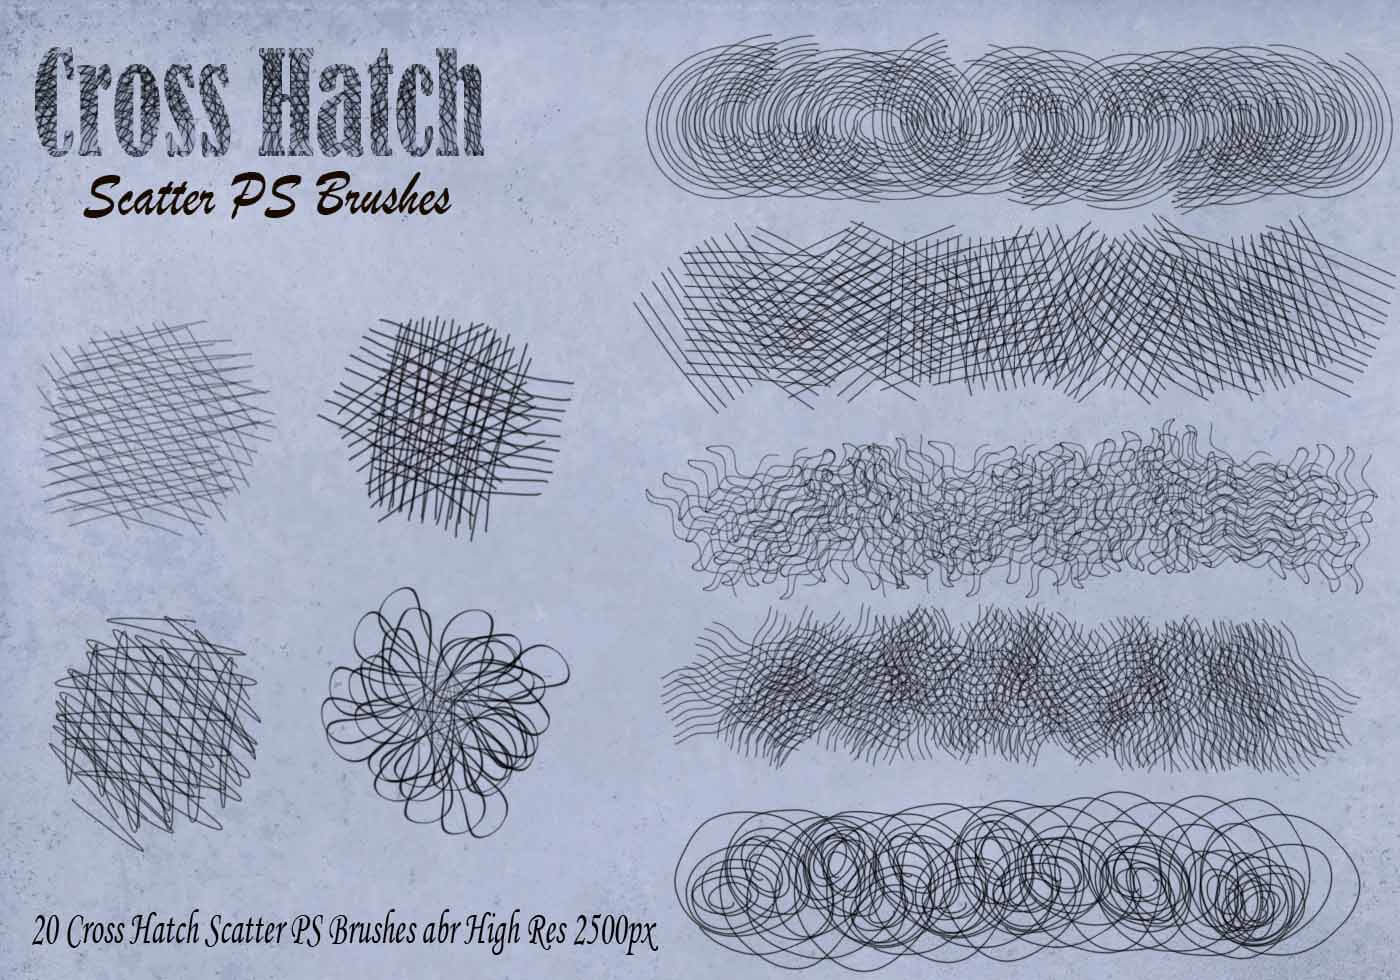 Cross hatch brushes